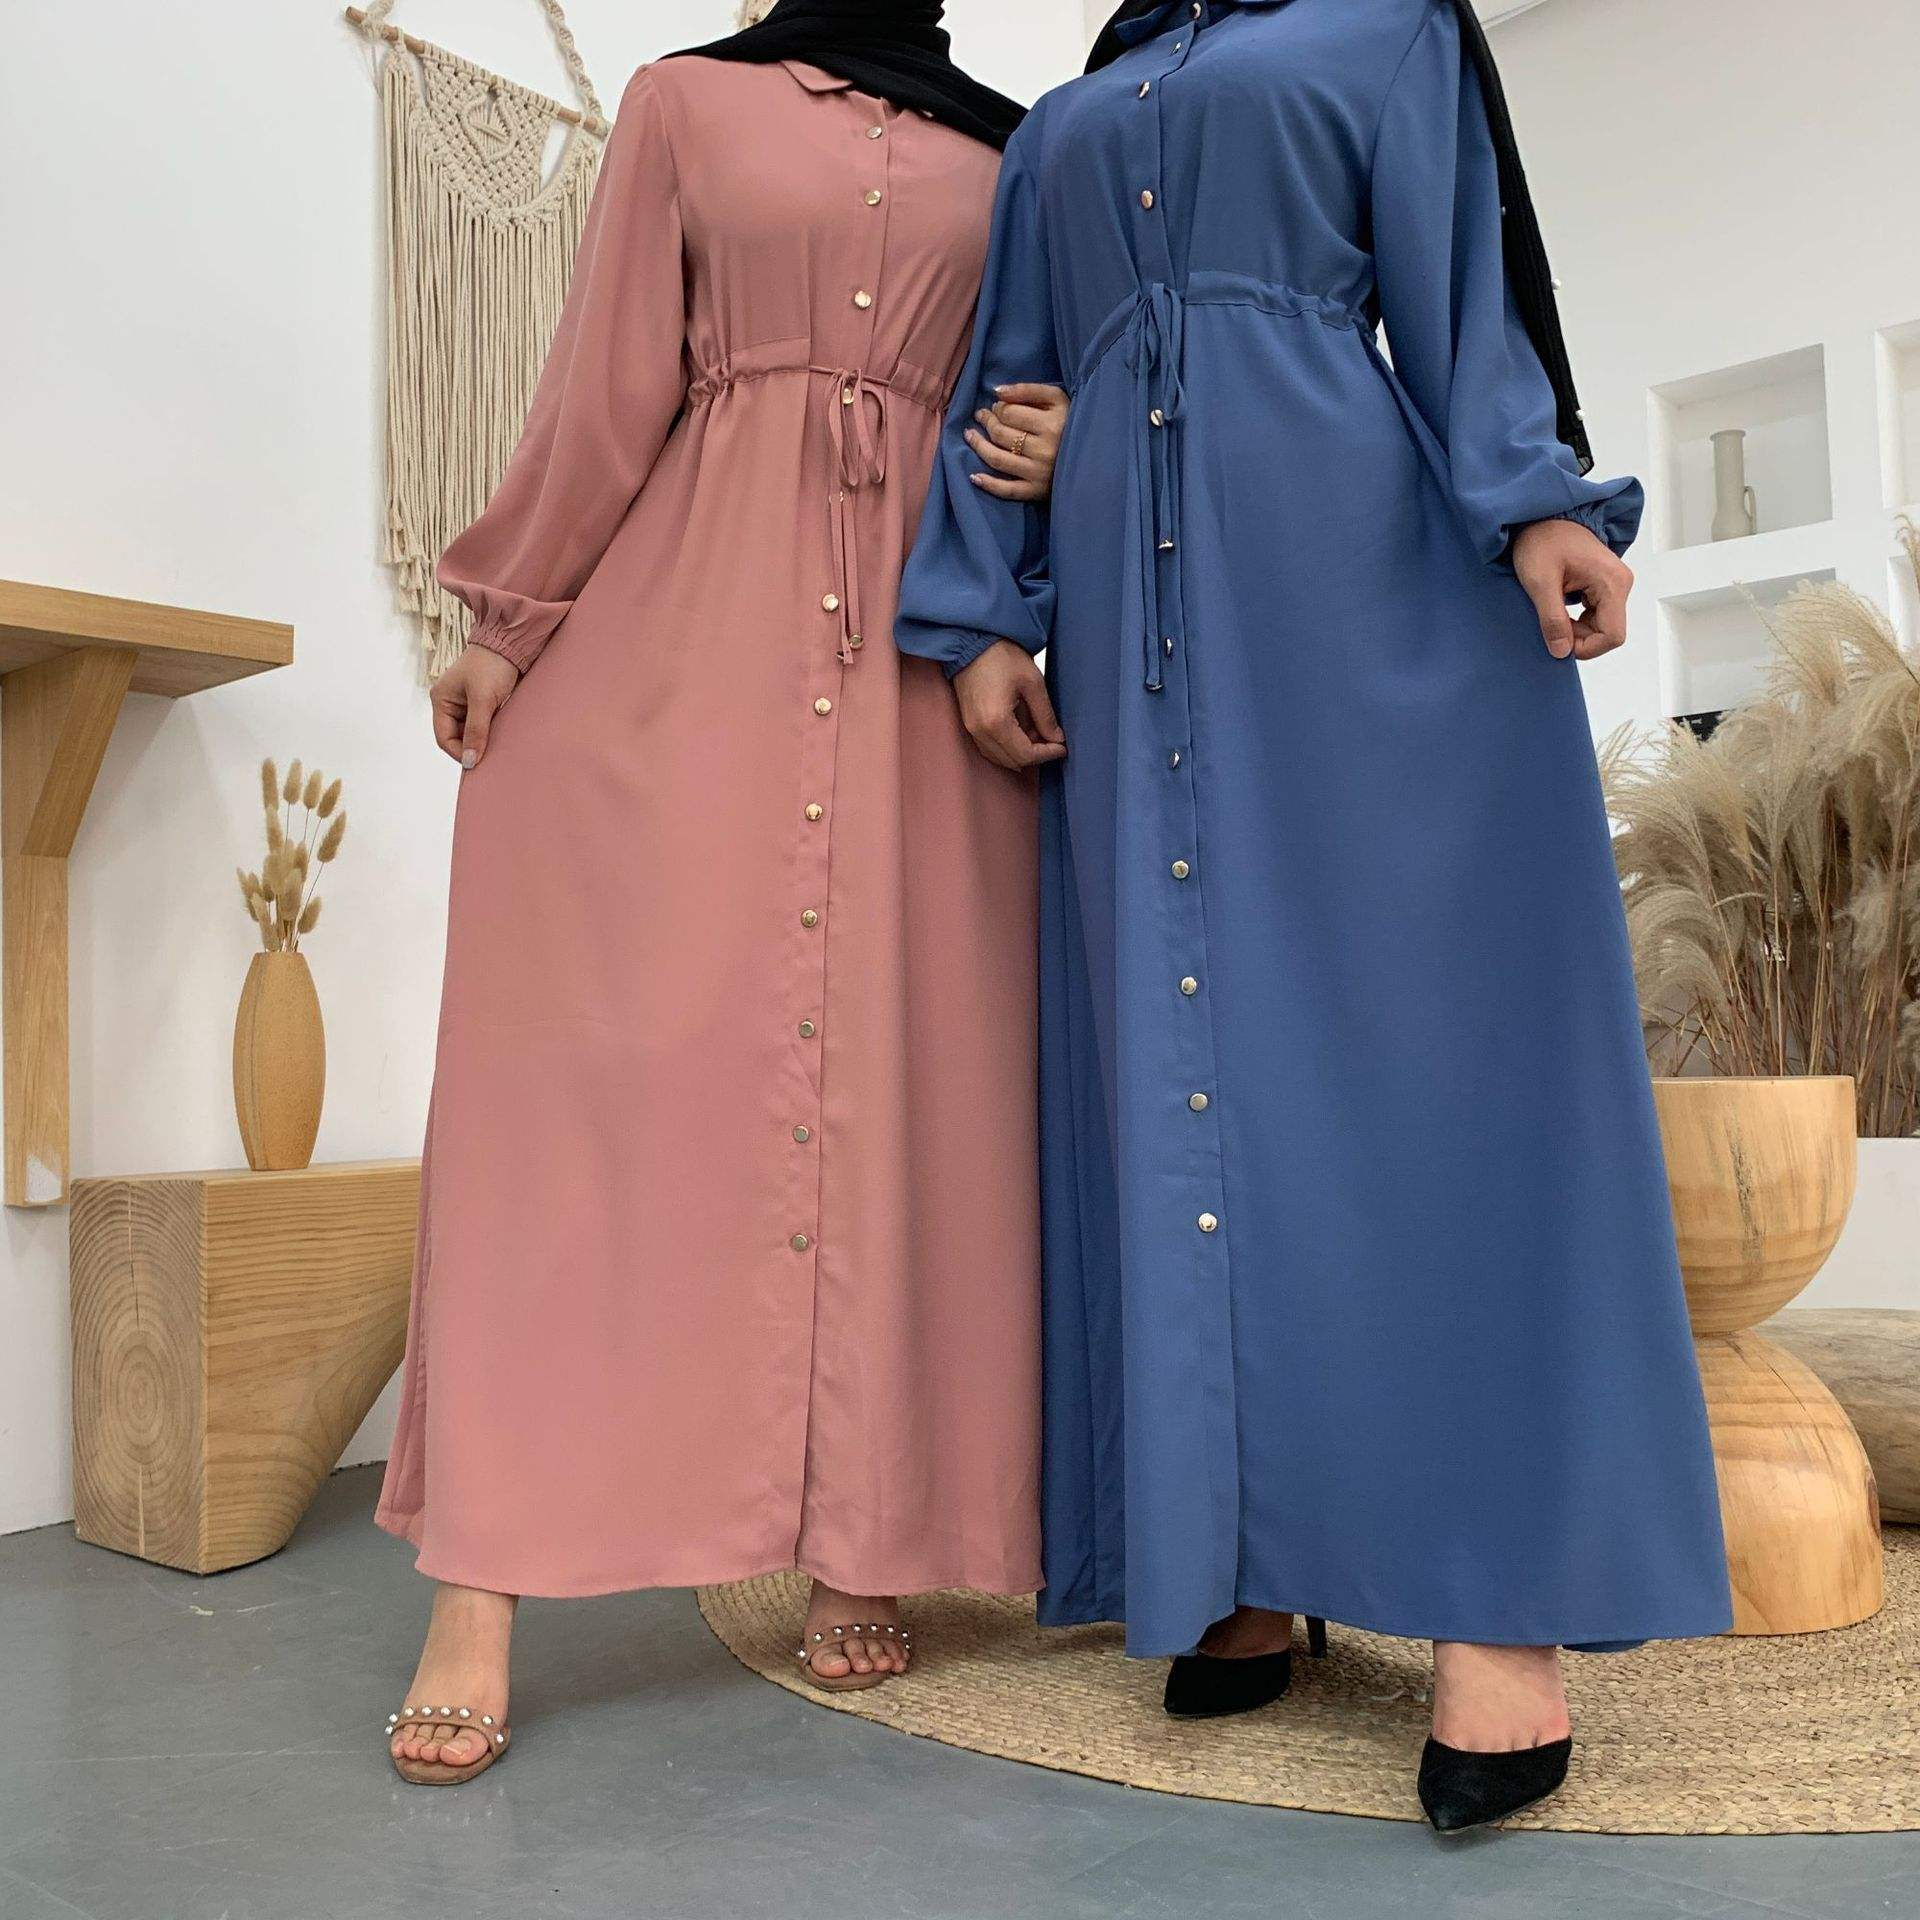 2020 new fashion lapel solid color full button slim dress long skirt abaya muslim dress islamic clothing